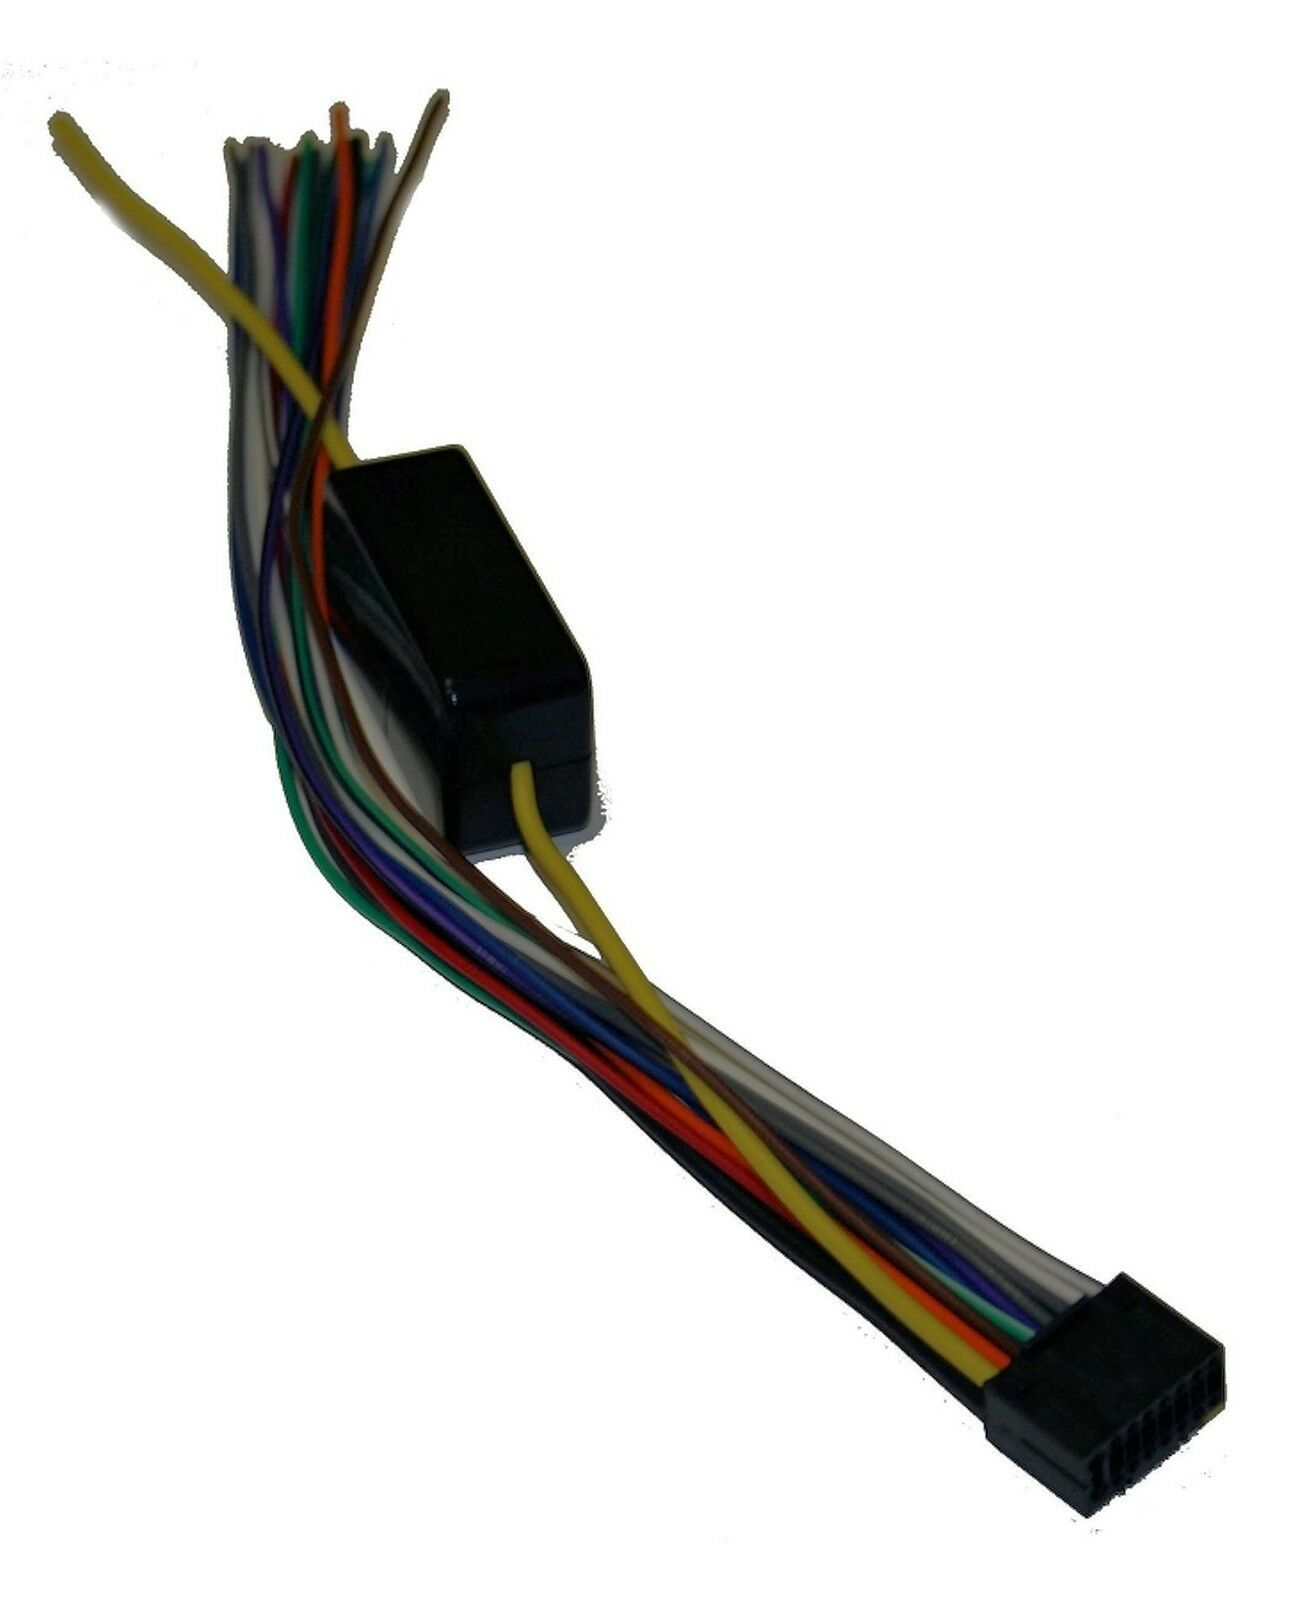 Phase Linear Uv8020 Wire Harness Wiring Library Page 3 Of Dual Car Stereo System Xdm6351 User Guide Manualsonline Find The Manual You Need For Your Audio Equipment And More At Uv7 Uv7i Uv8 Uv8i Uv9i Uv10 1 See